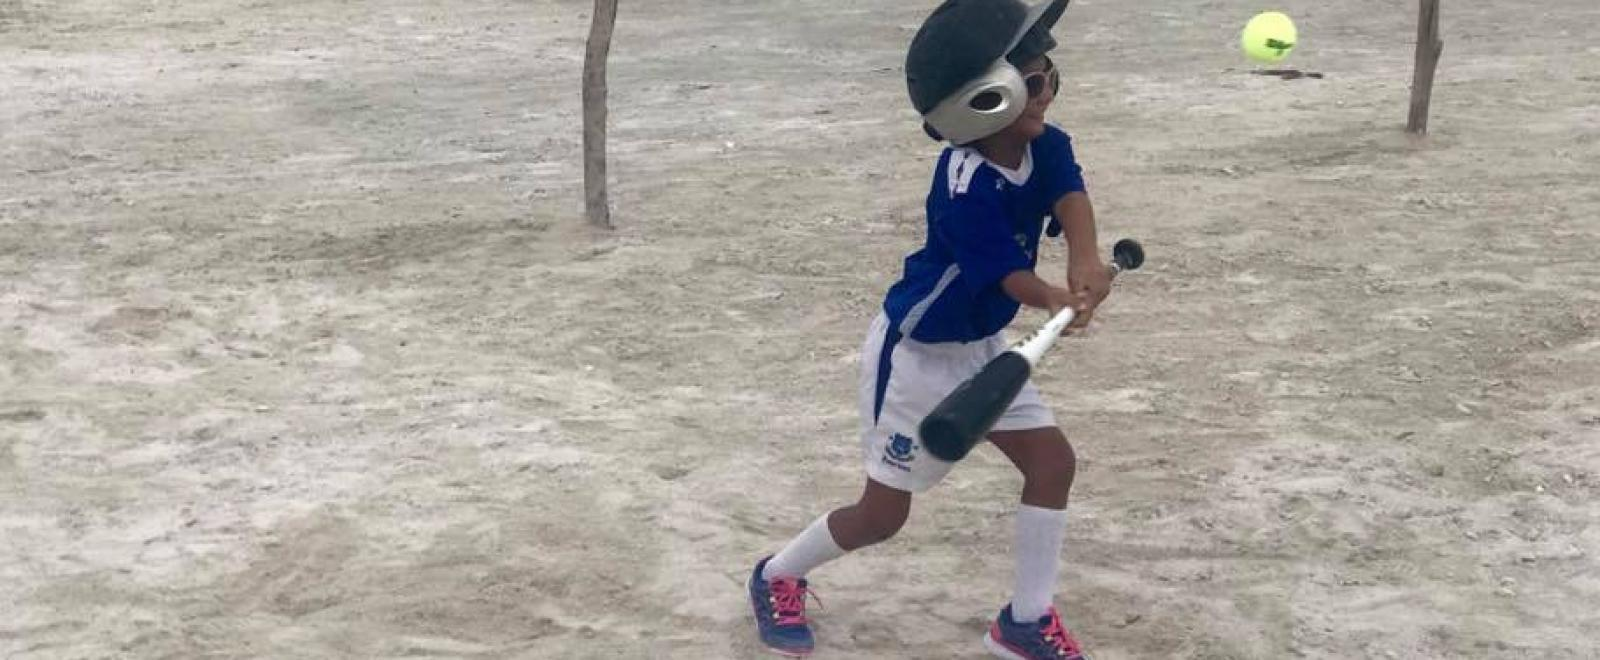 A young boy learns to play baseball during our volunteer sports coaching in schools in Belize